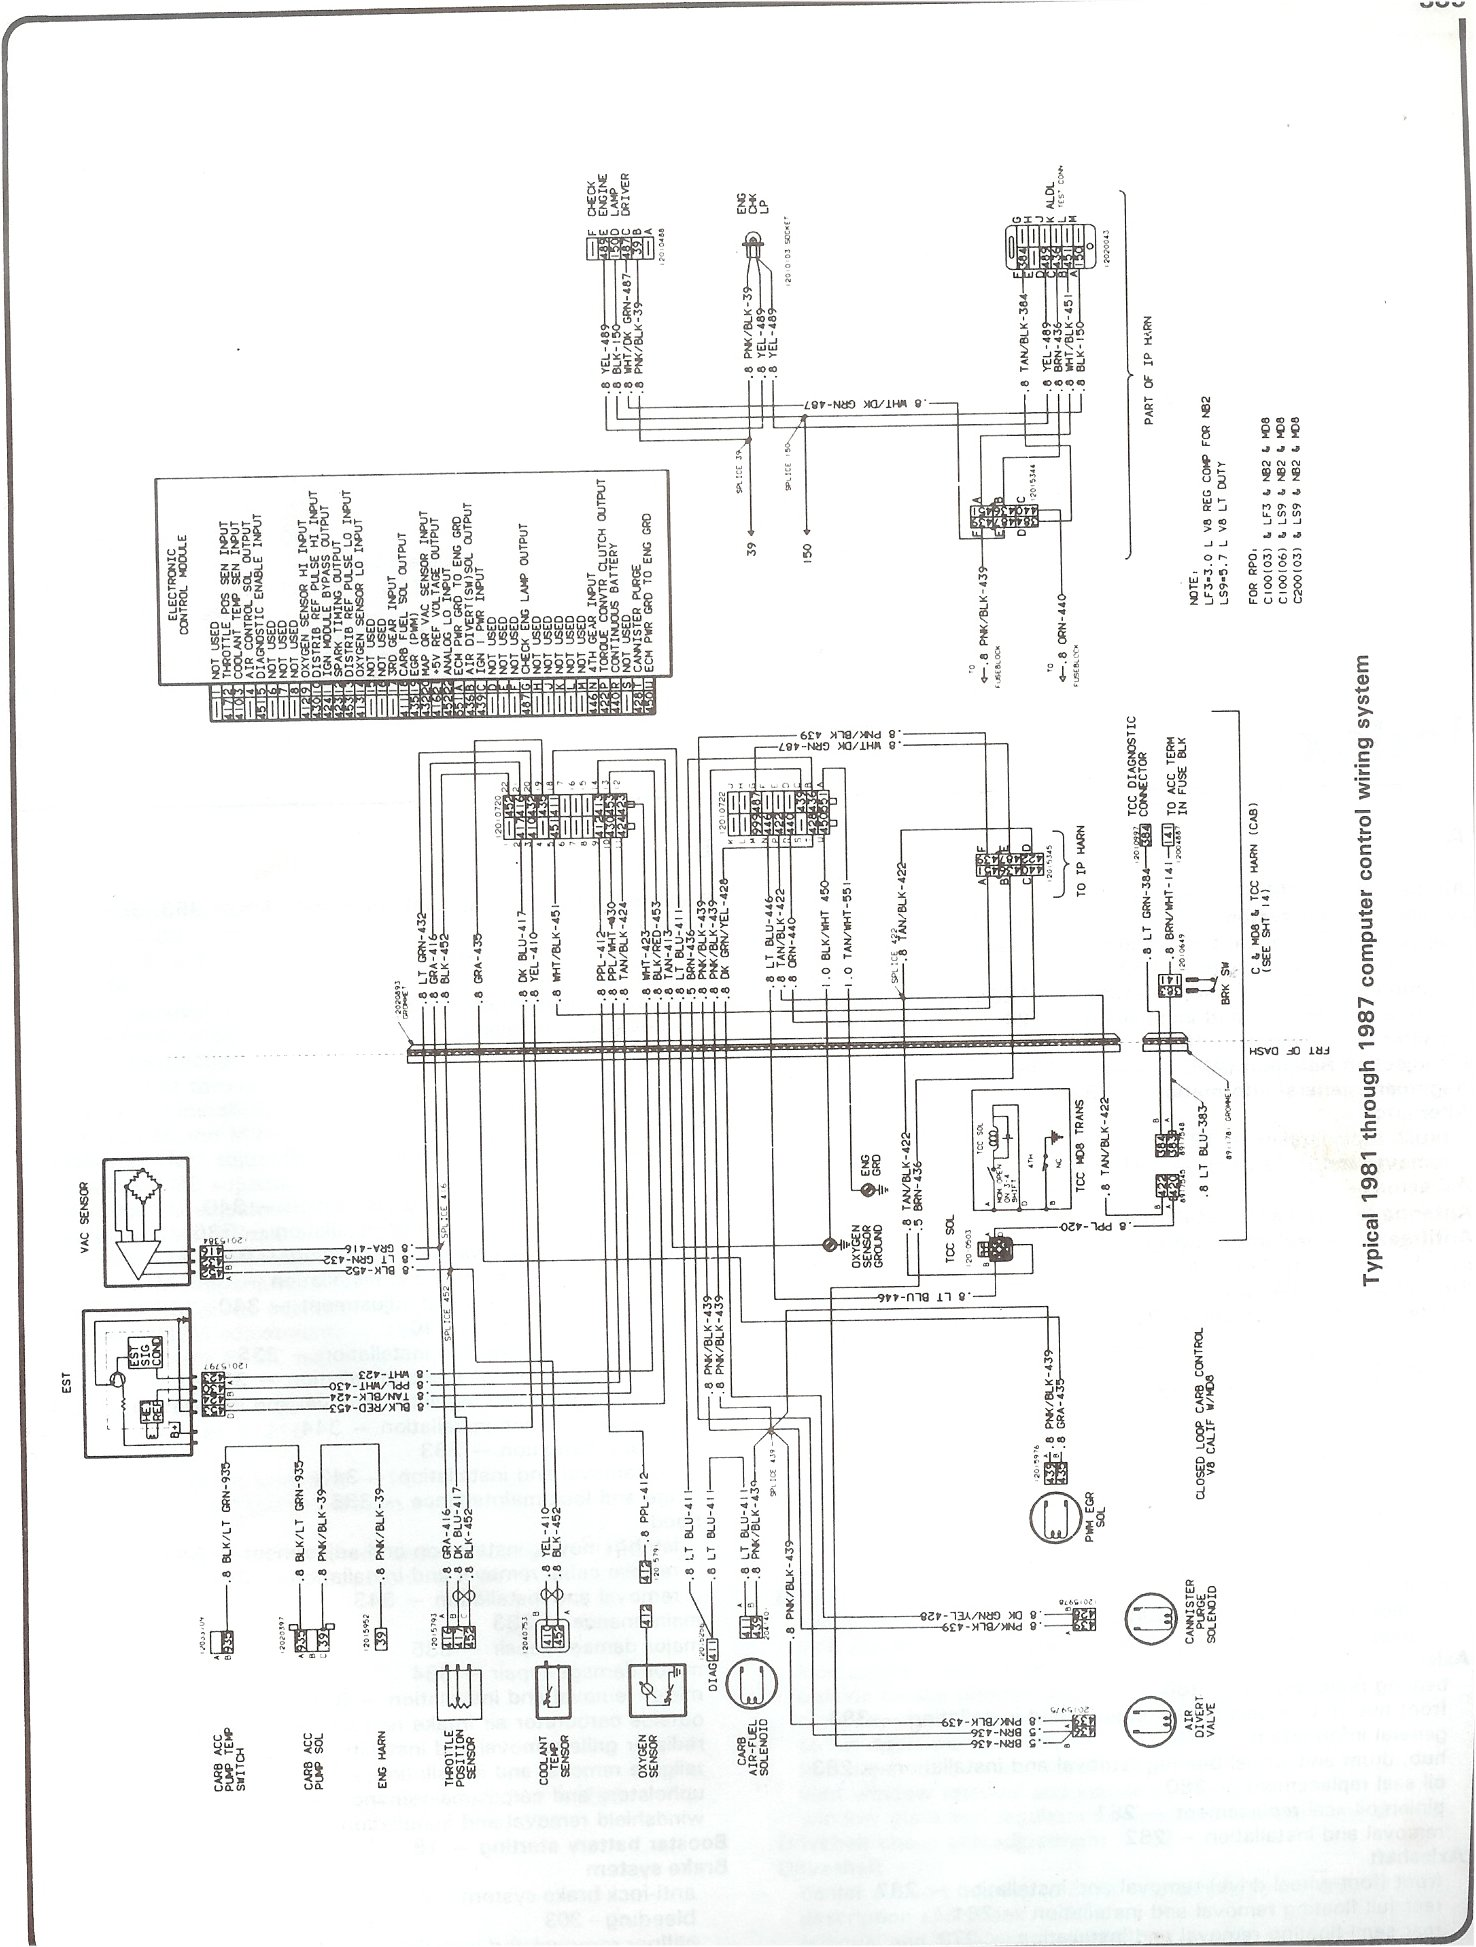 1993 Gmc Topkick Wiring Diagrams Real Diagram 2004 C4500 Kodiak Complete 73 87 Sierra Fuse